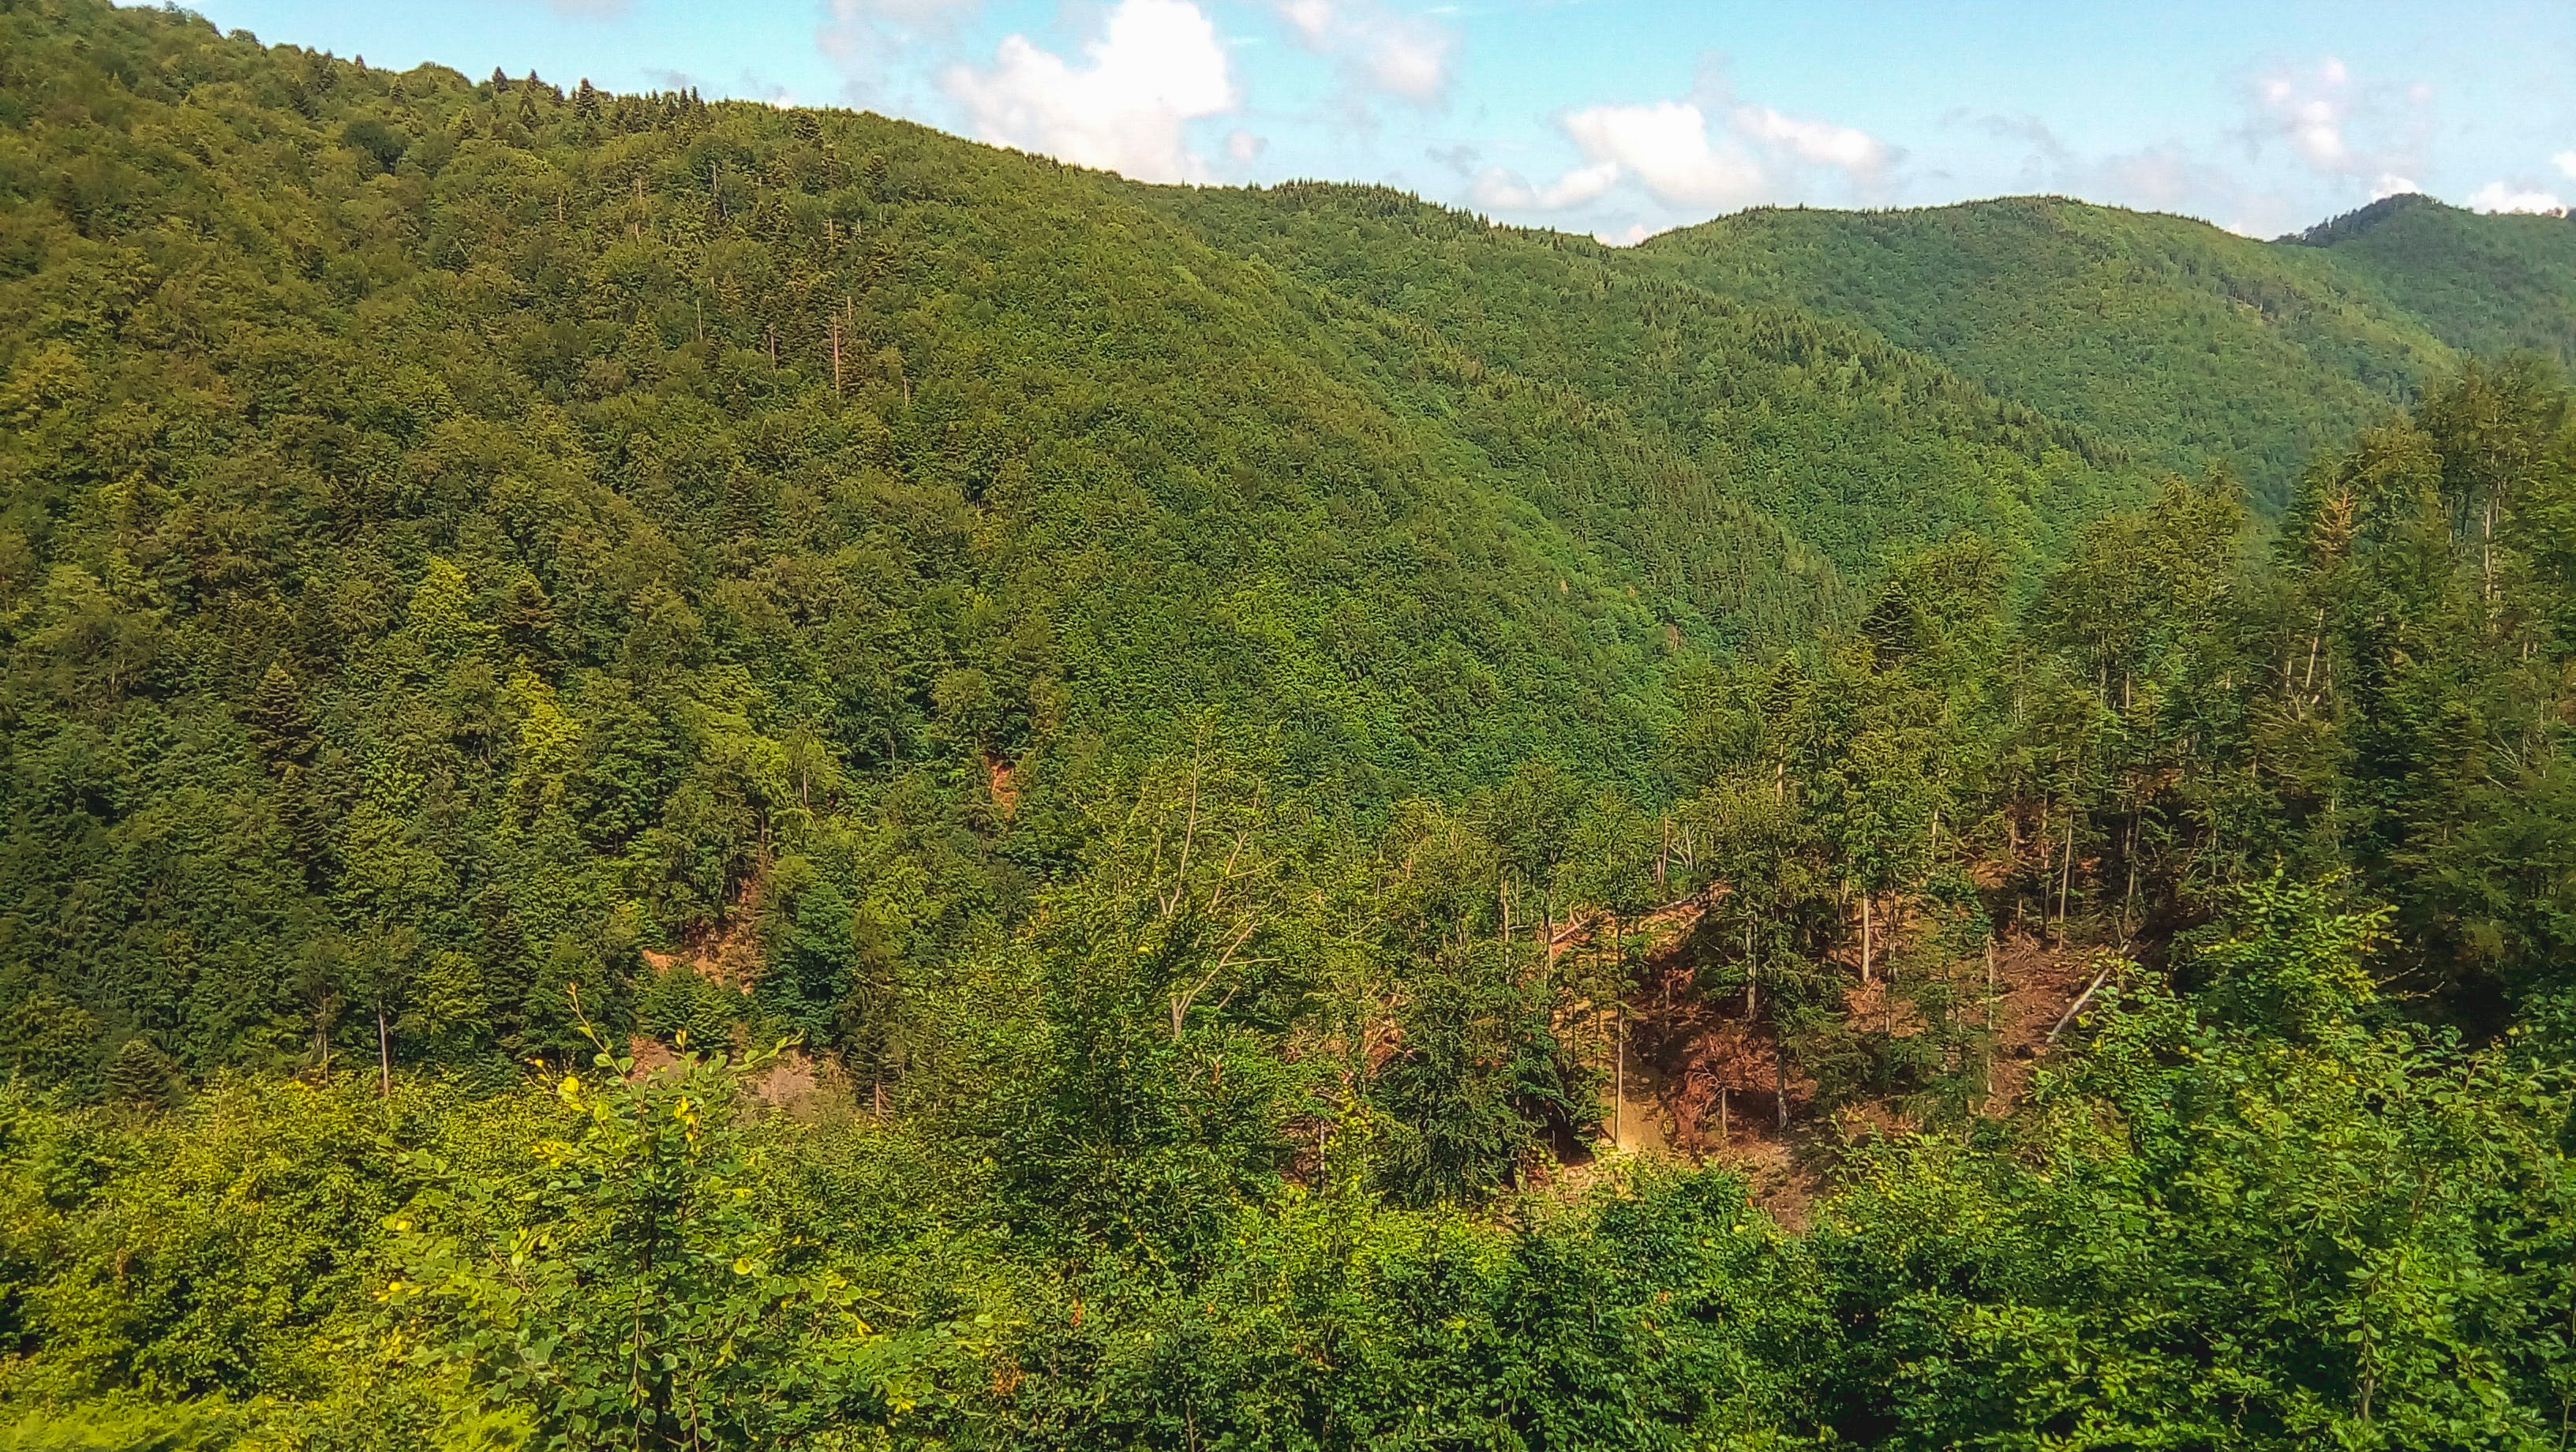 Free stock photo of forest cover, mountain, trees